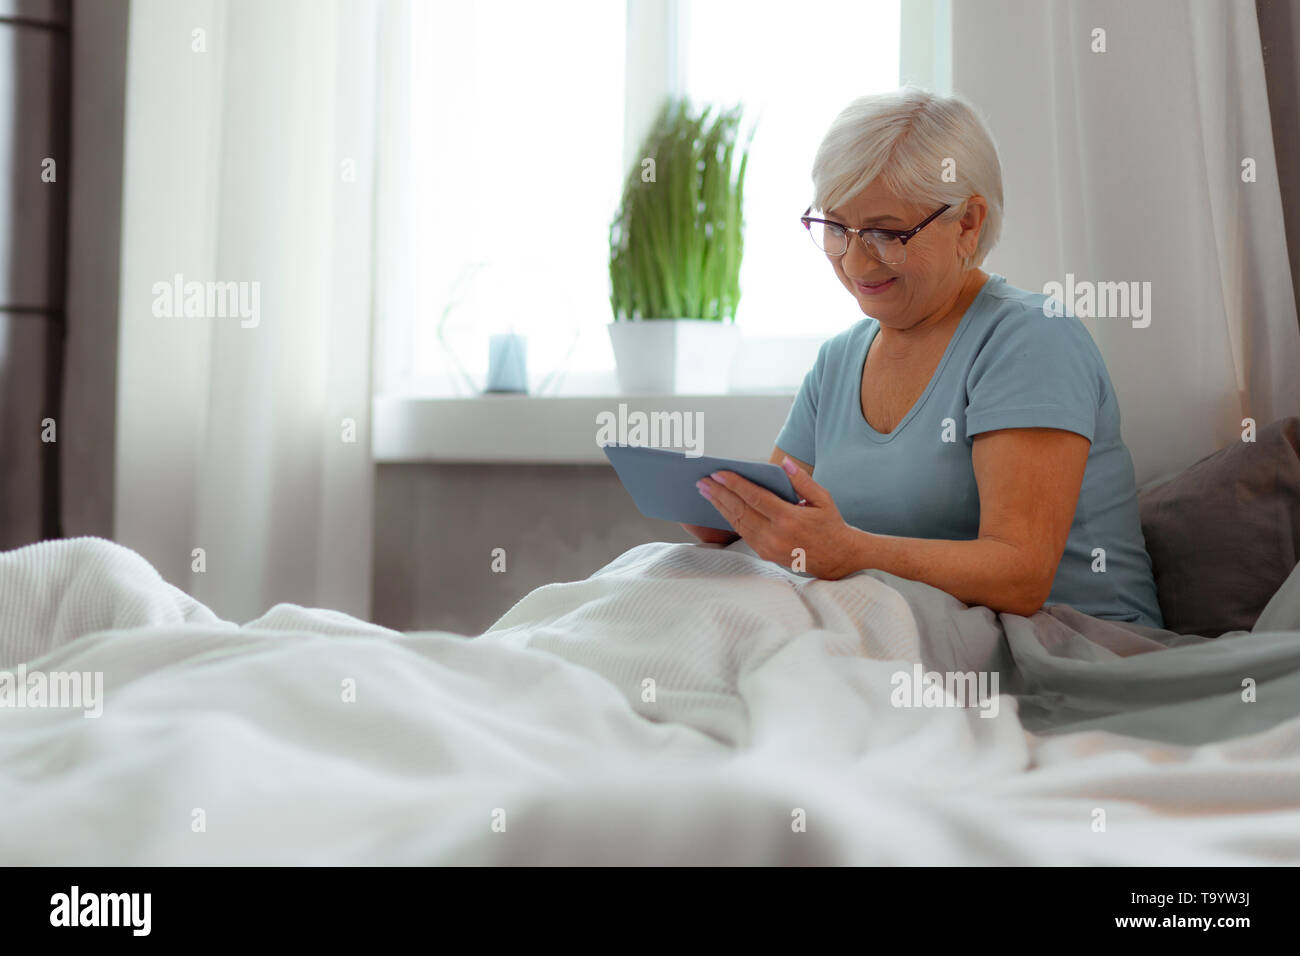 Smiling female clicking on the tablet while lying in bed - Stock Image